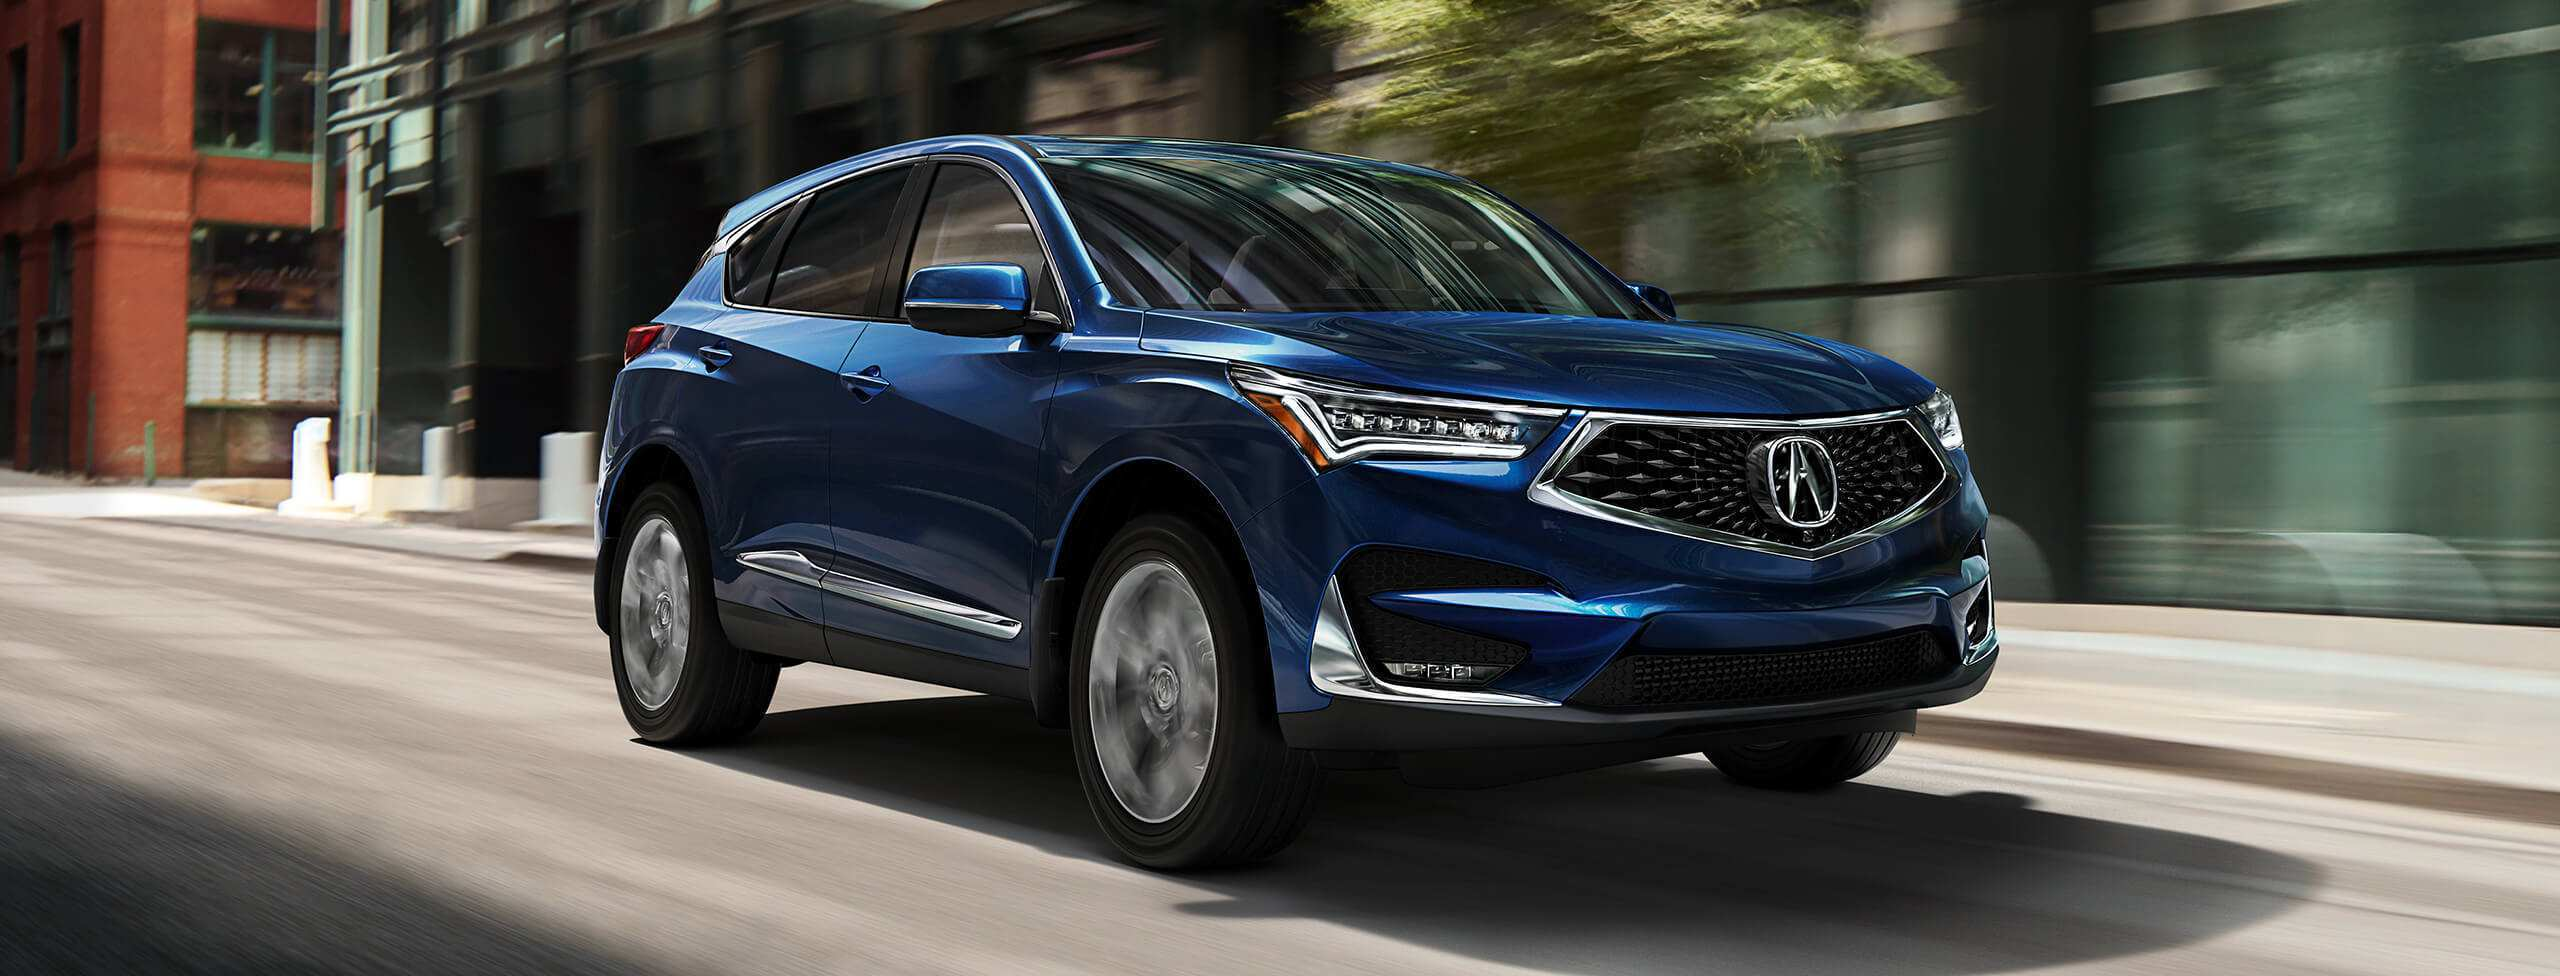 50 Best 2020 Acura RDX Images